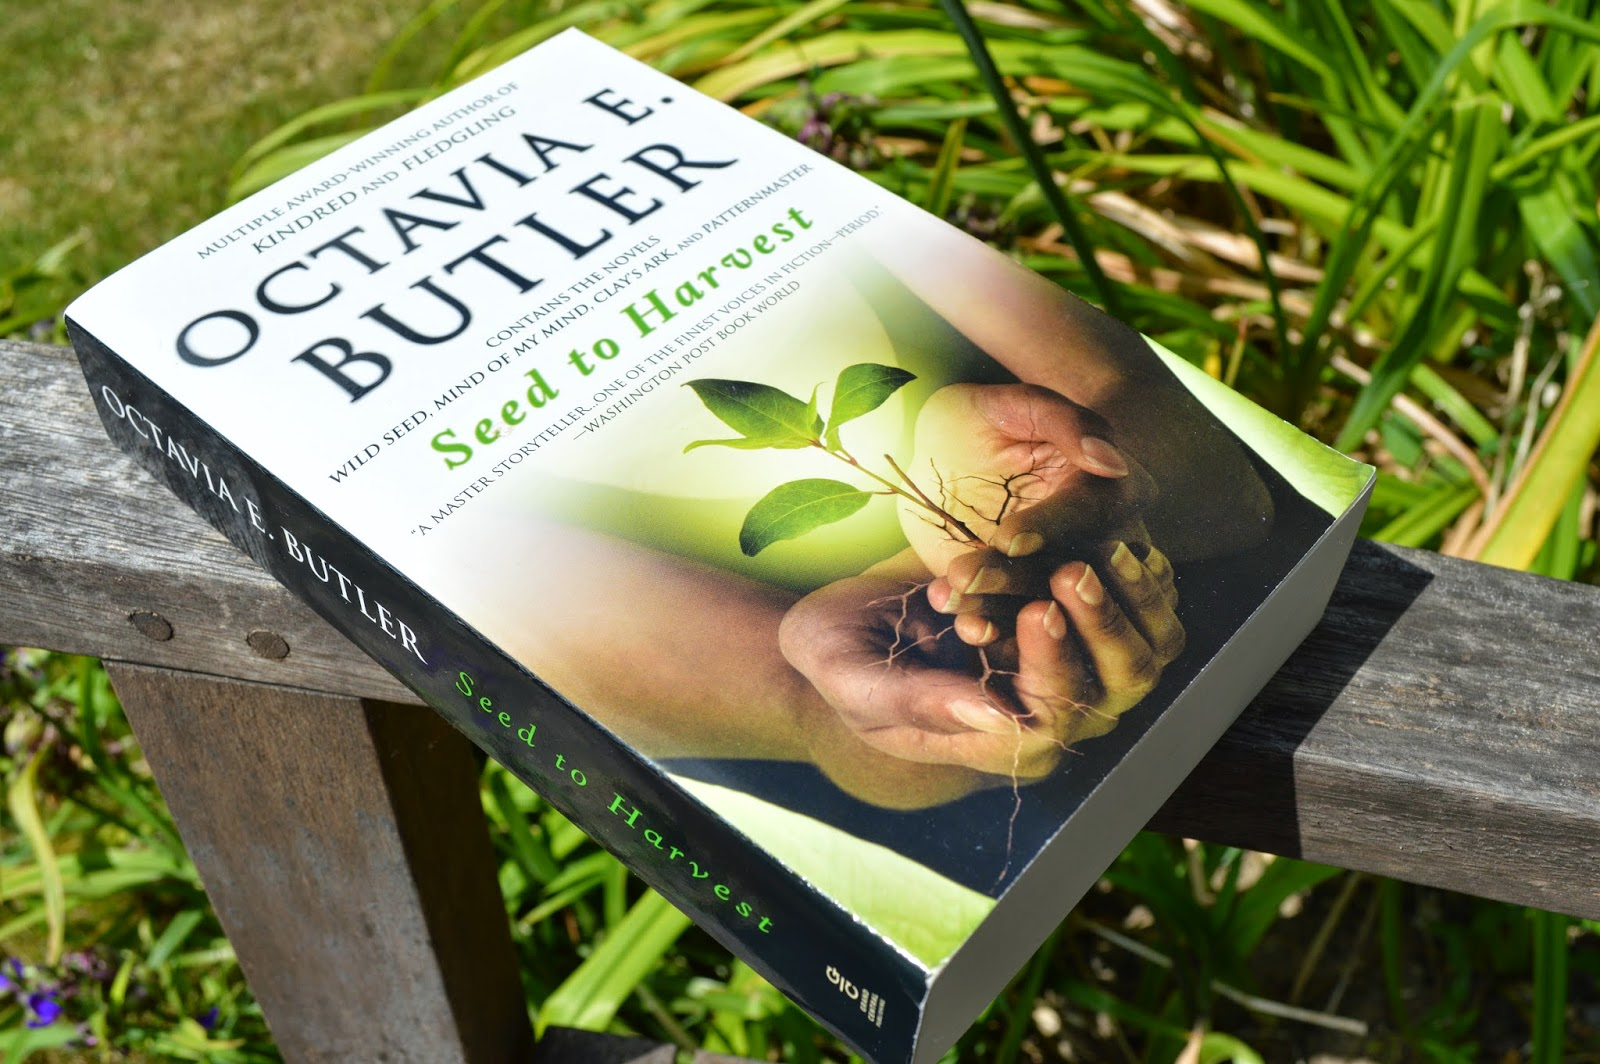 photo, photograph, paperback, UK edition, book cover, spine, Octavia E Butler, Seed to harvest, Patternist series, book review, Wild seed, mind of my mind, clay's ark, Patternmaster, afro-futurism, science fiction, African-American literature